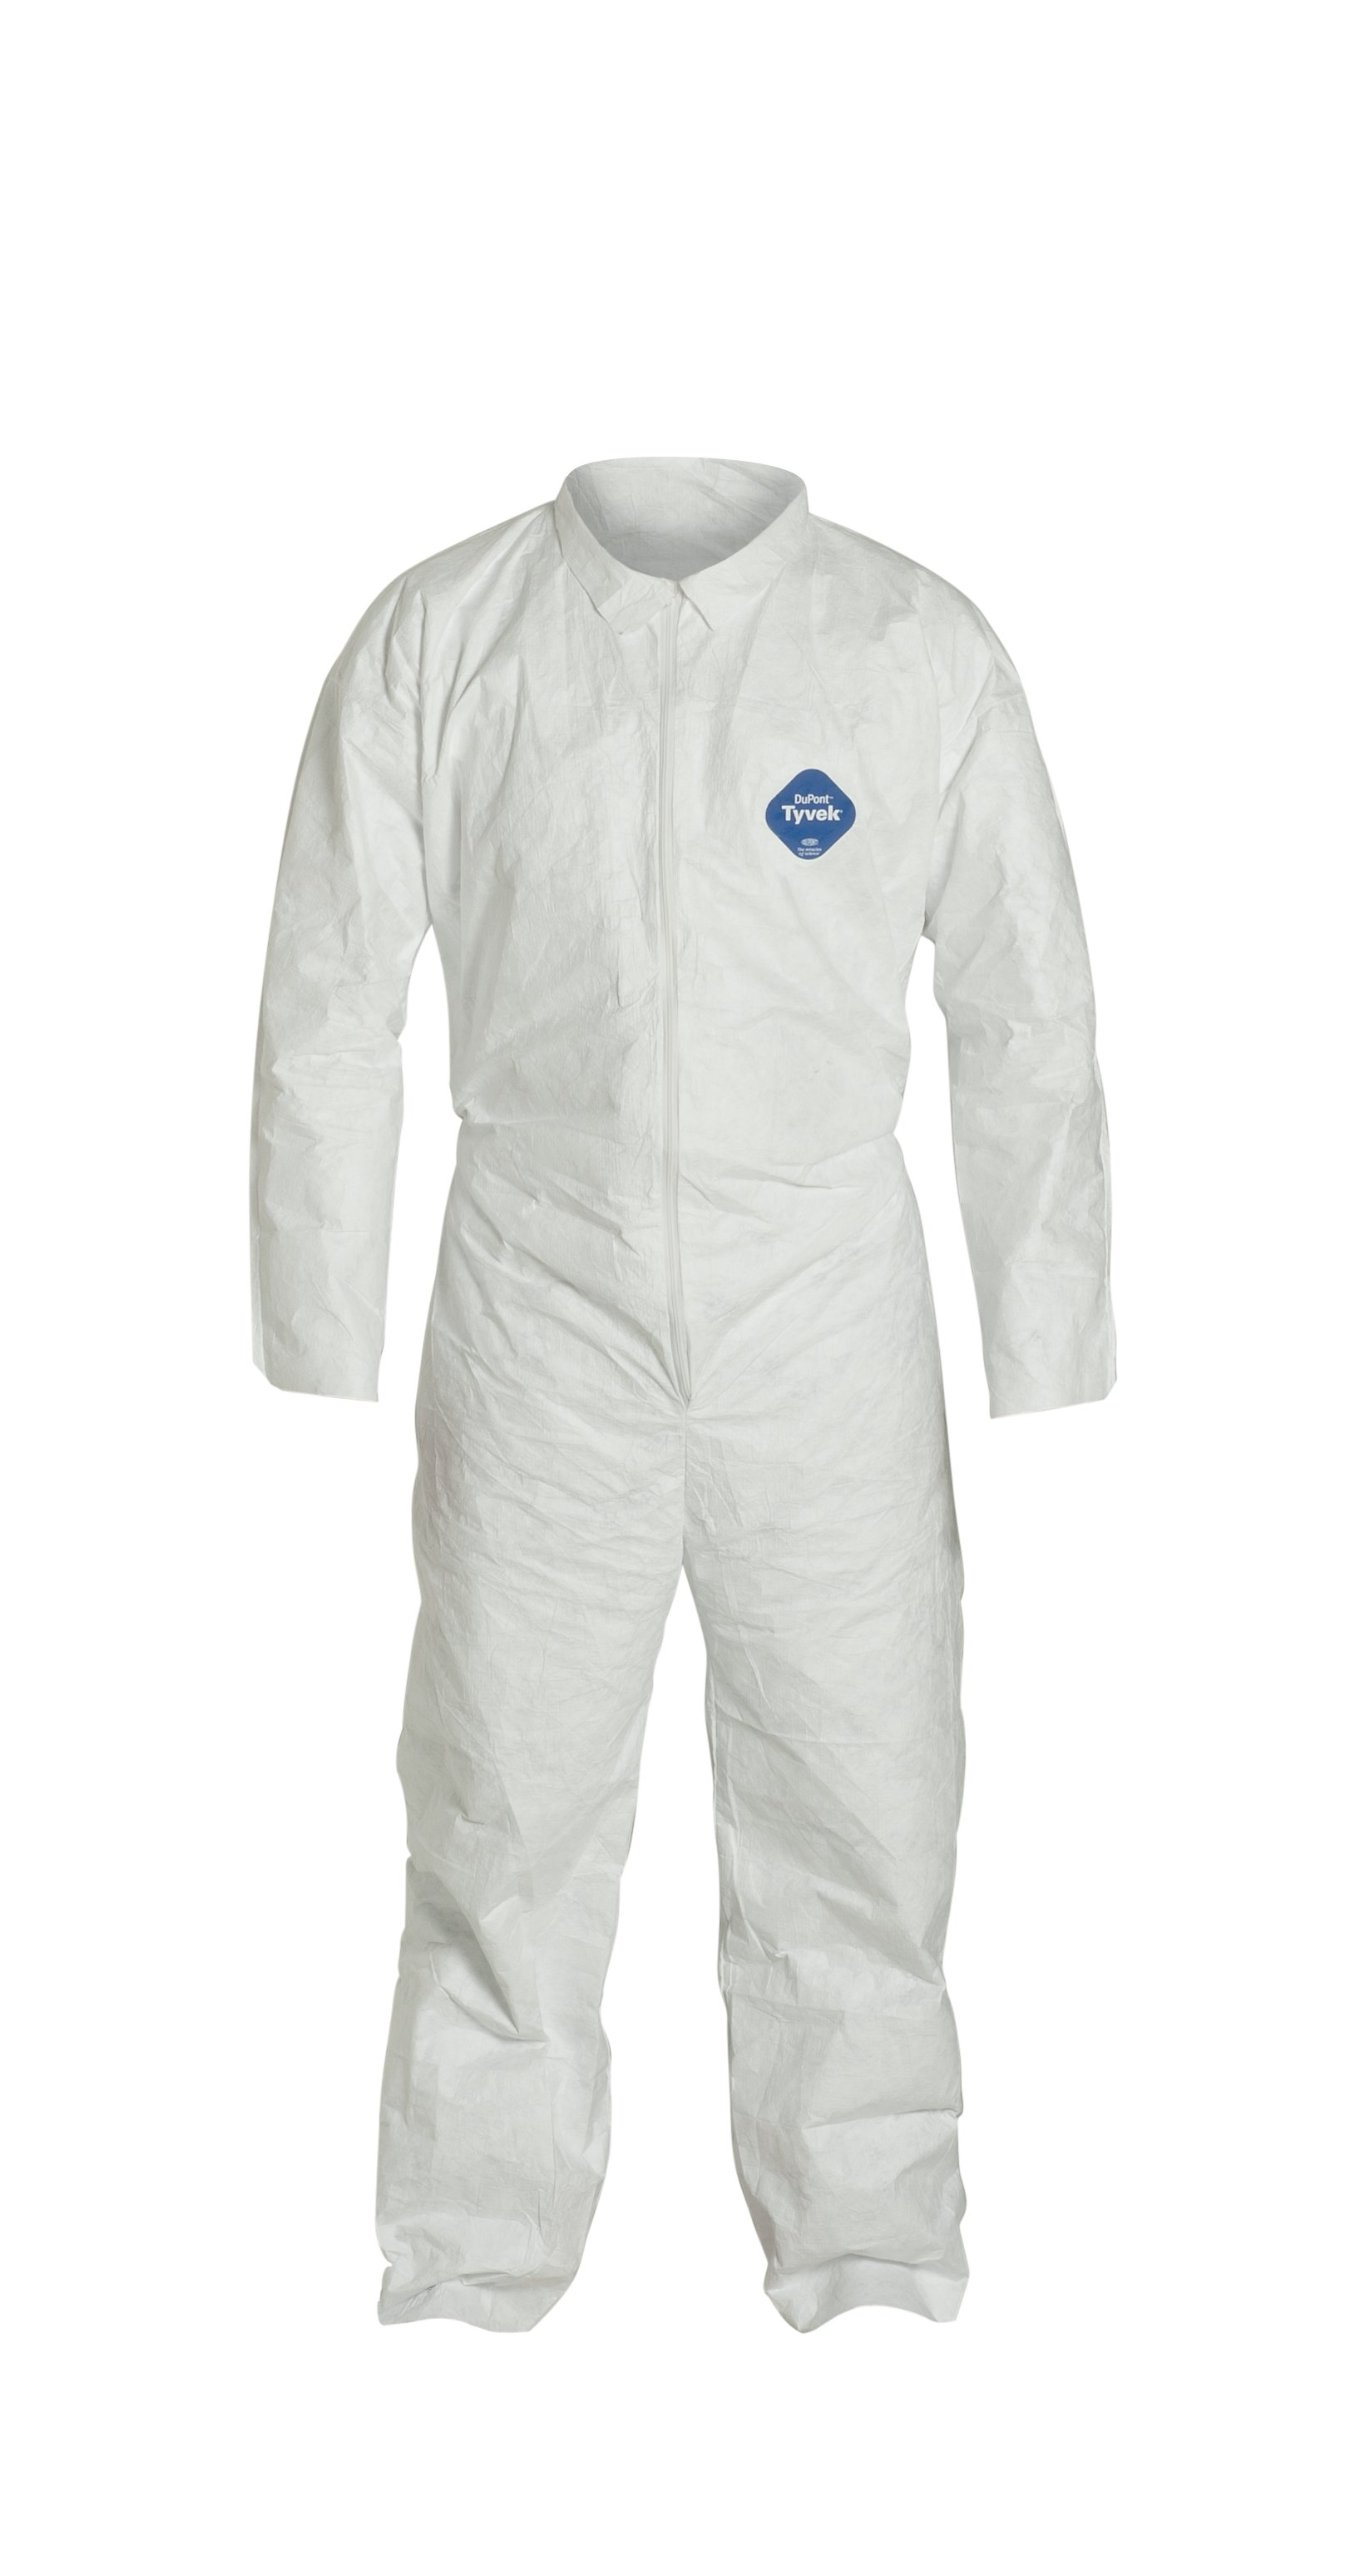 DuPont Tyvek 400 TY120S Disposable Protective Coverall, White, 4X-Large (Pack of 6)